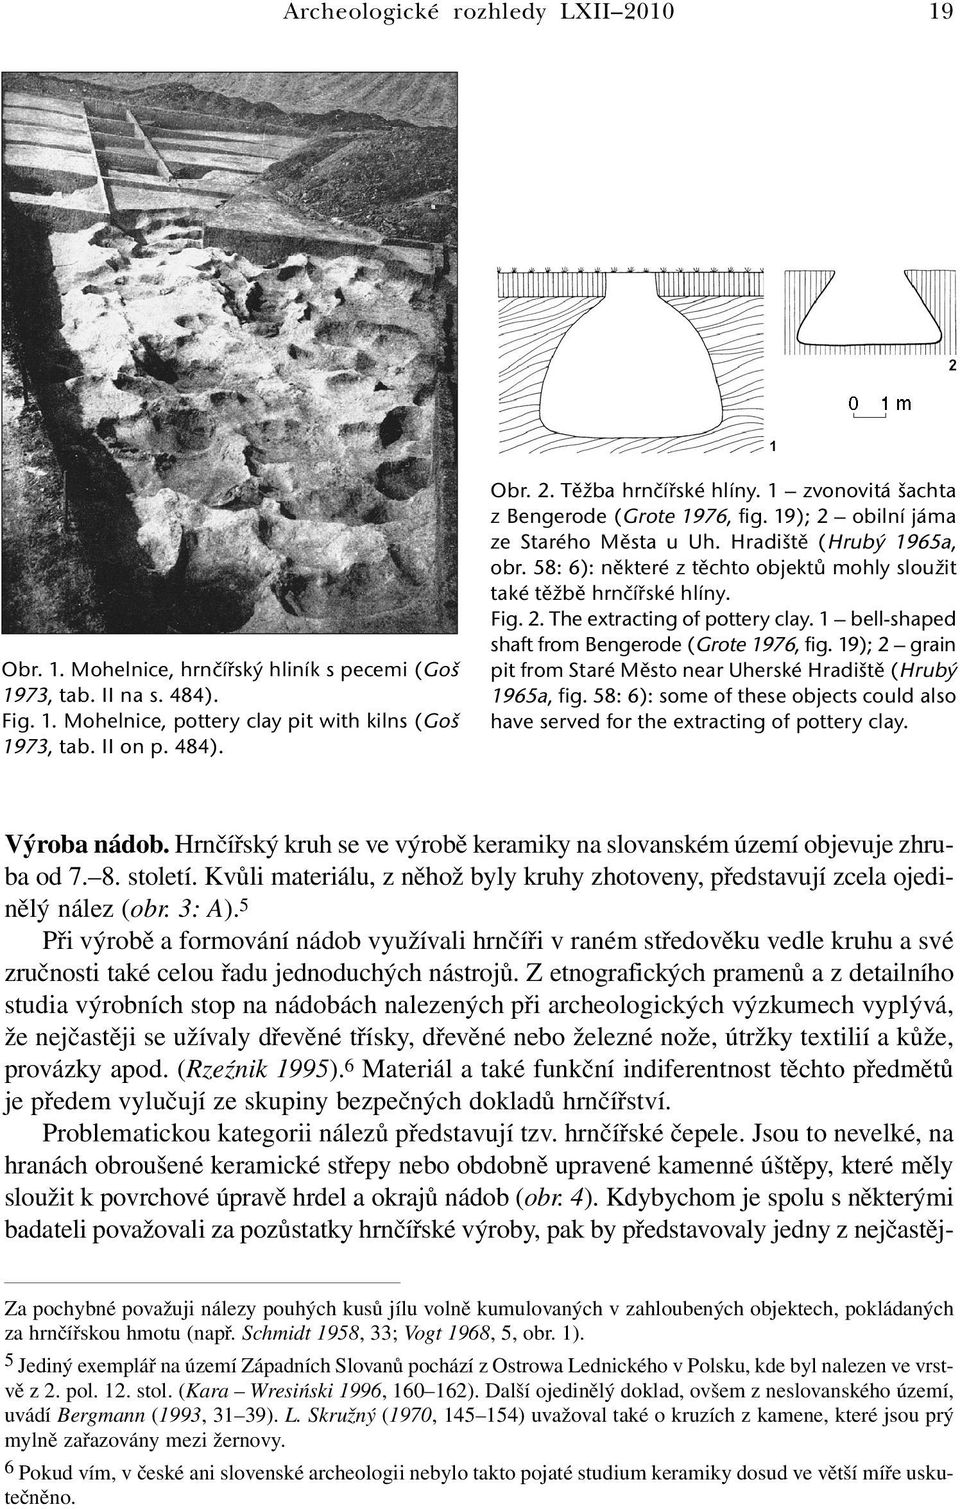 2. The extracting of pottery clay. 1 bell-shaped shaft from Bengerode (Grote 1976, fig. 19); 2 grain pit from Staré Město near Uherské Hradiště (Hrubý 1965a, fig.